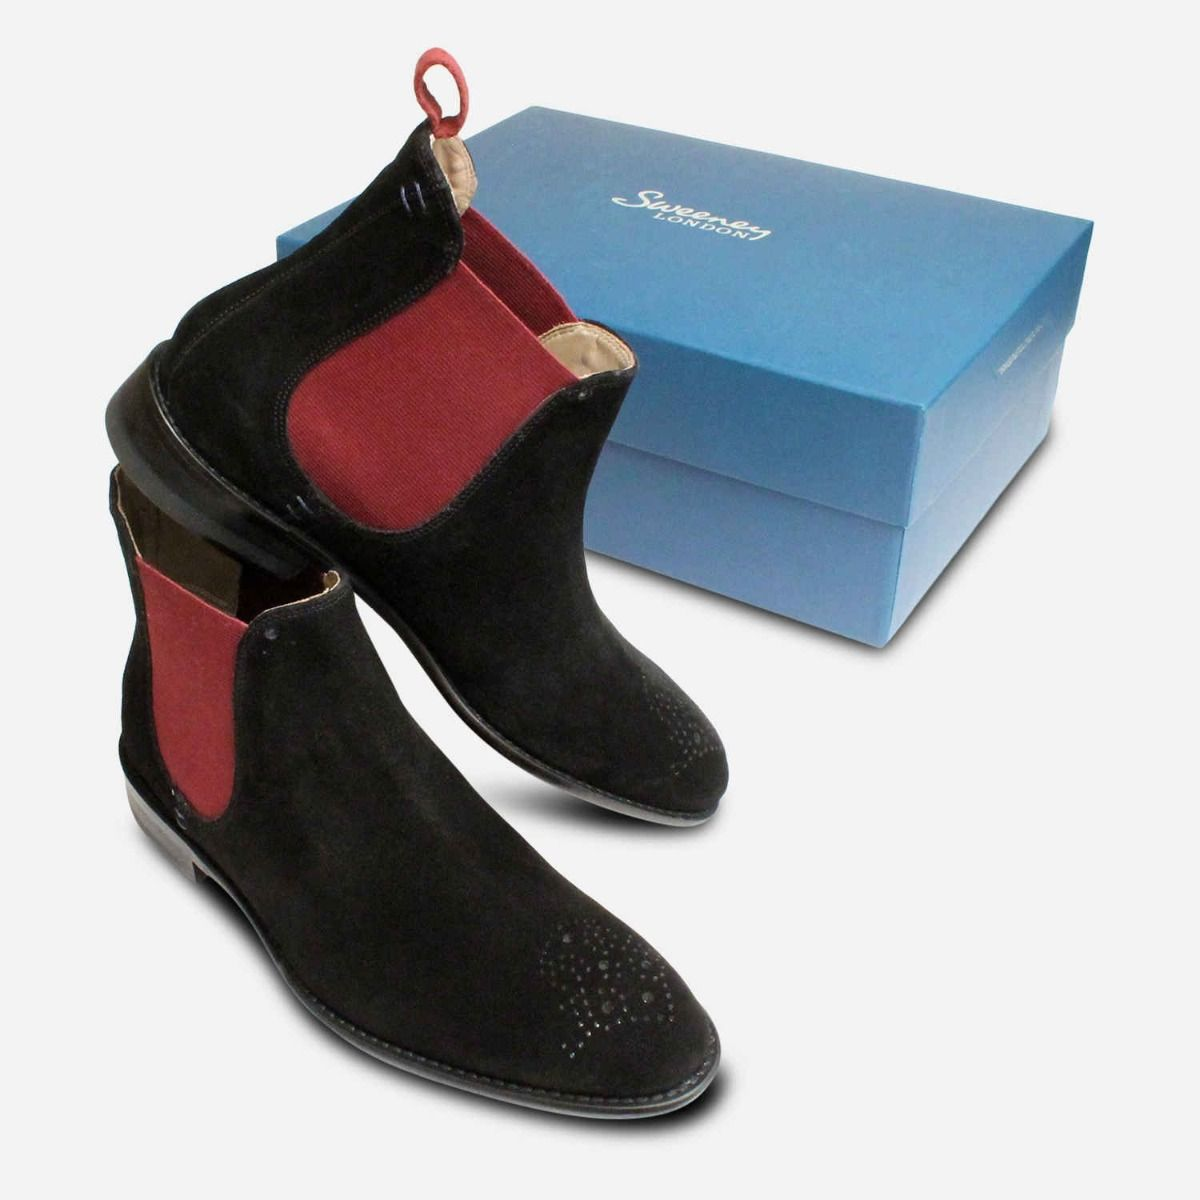 Black Suede & Burgundy Oliver Sweeney Chelsea Boots